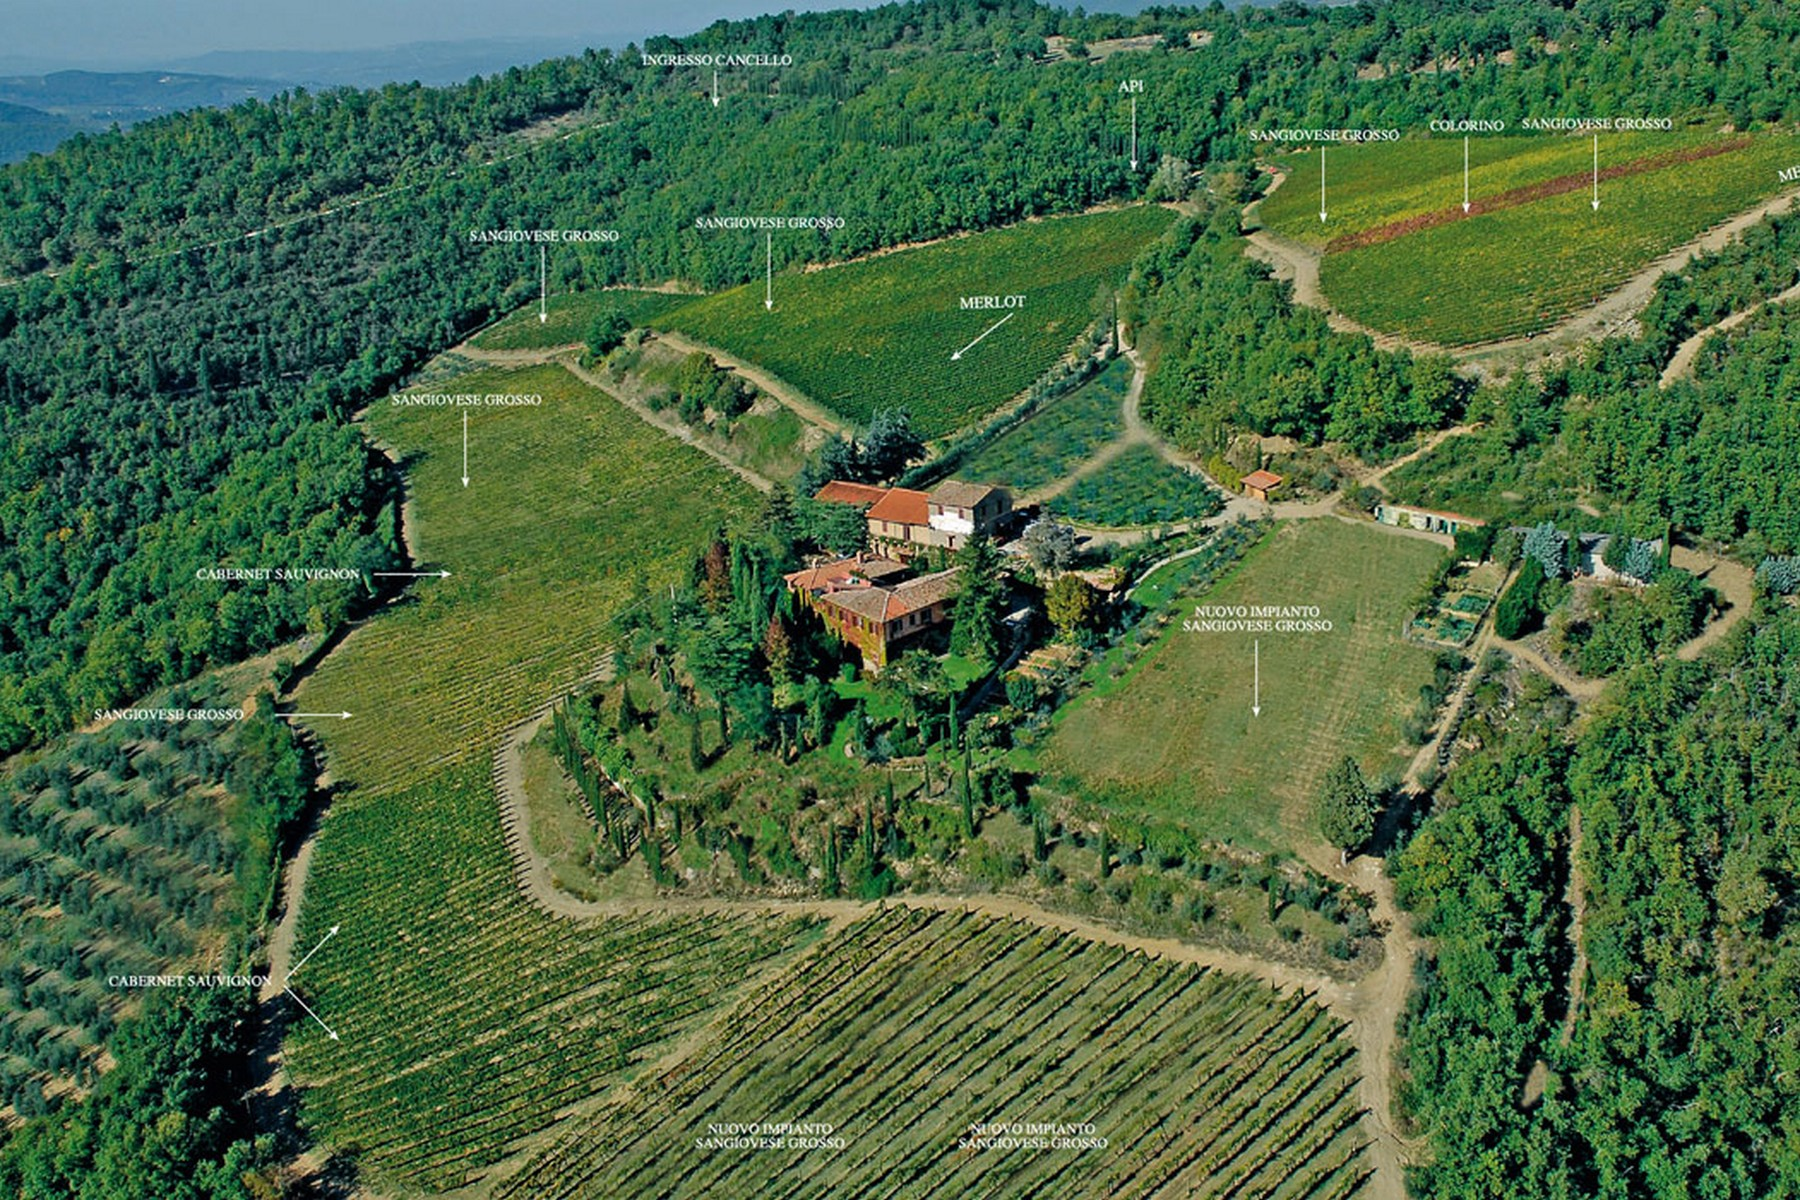 Single Family Home for Sale at Chianti vineyard and villa Via San Leonino Panzano In Chianti, Florence, 50022 Tuscany, Italy